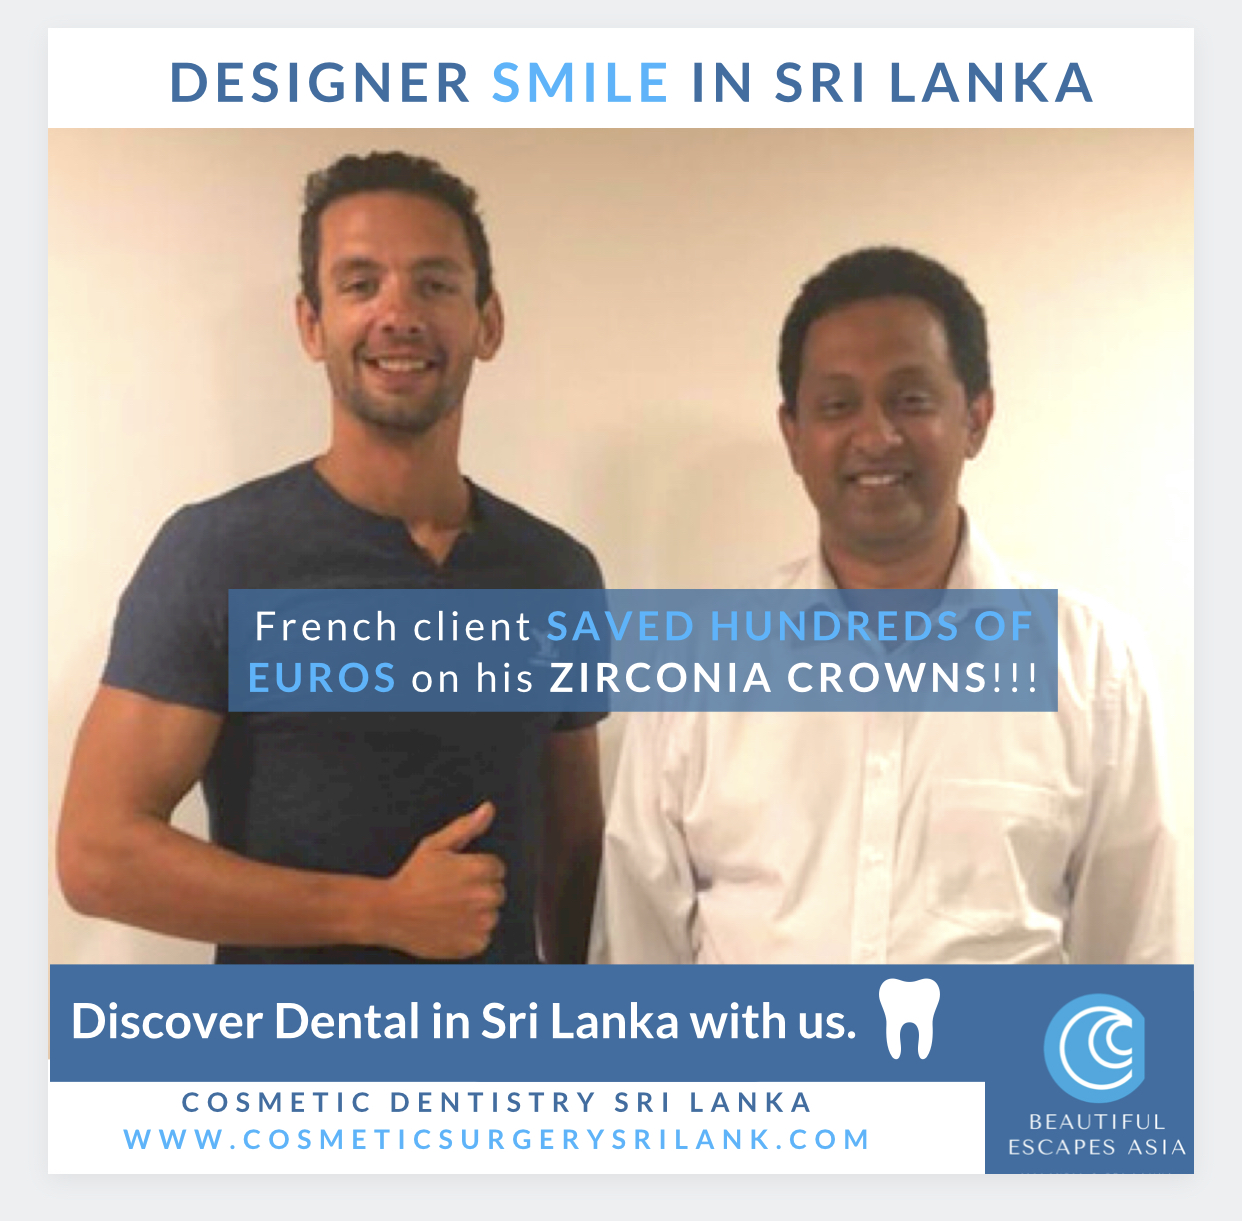 CLIENT SAVED ON HIS CROWNS IN SRI LANKA